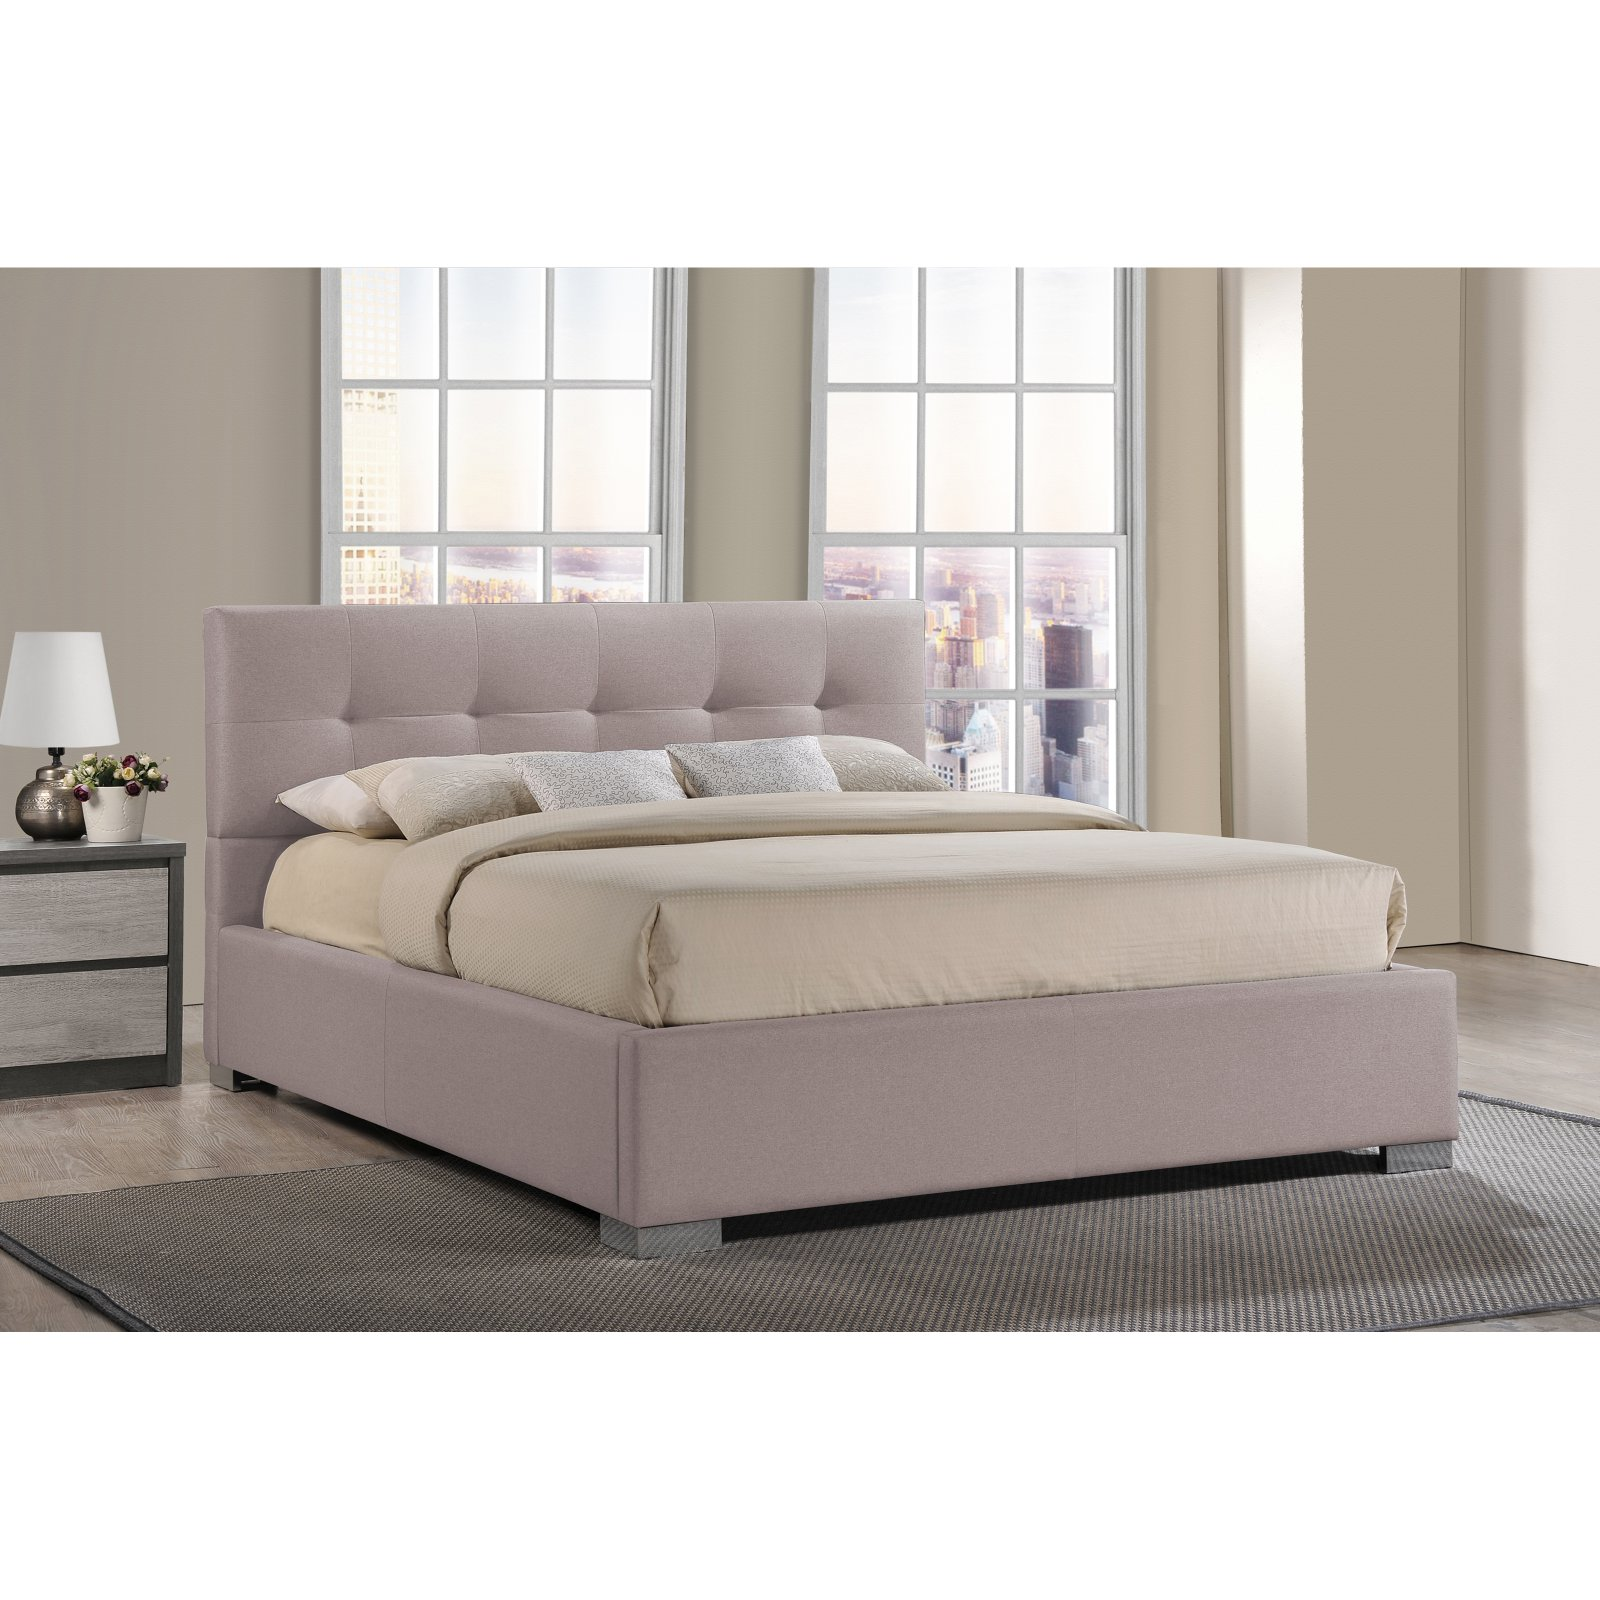 Baxton Studio Regata Modern and Contemporary Upholstered Platform Bed, Multiple Sizes, Multiple Colors